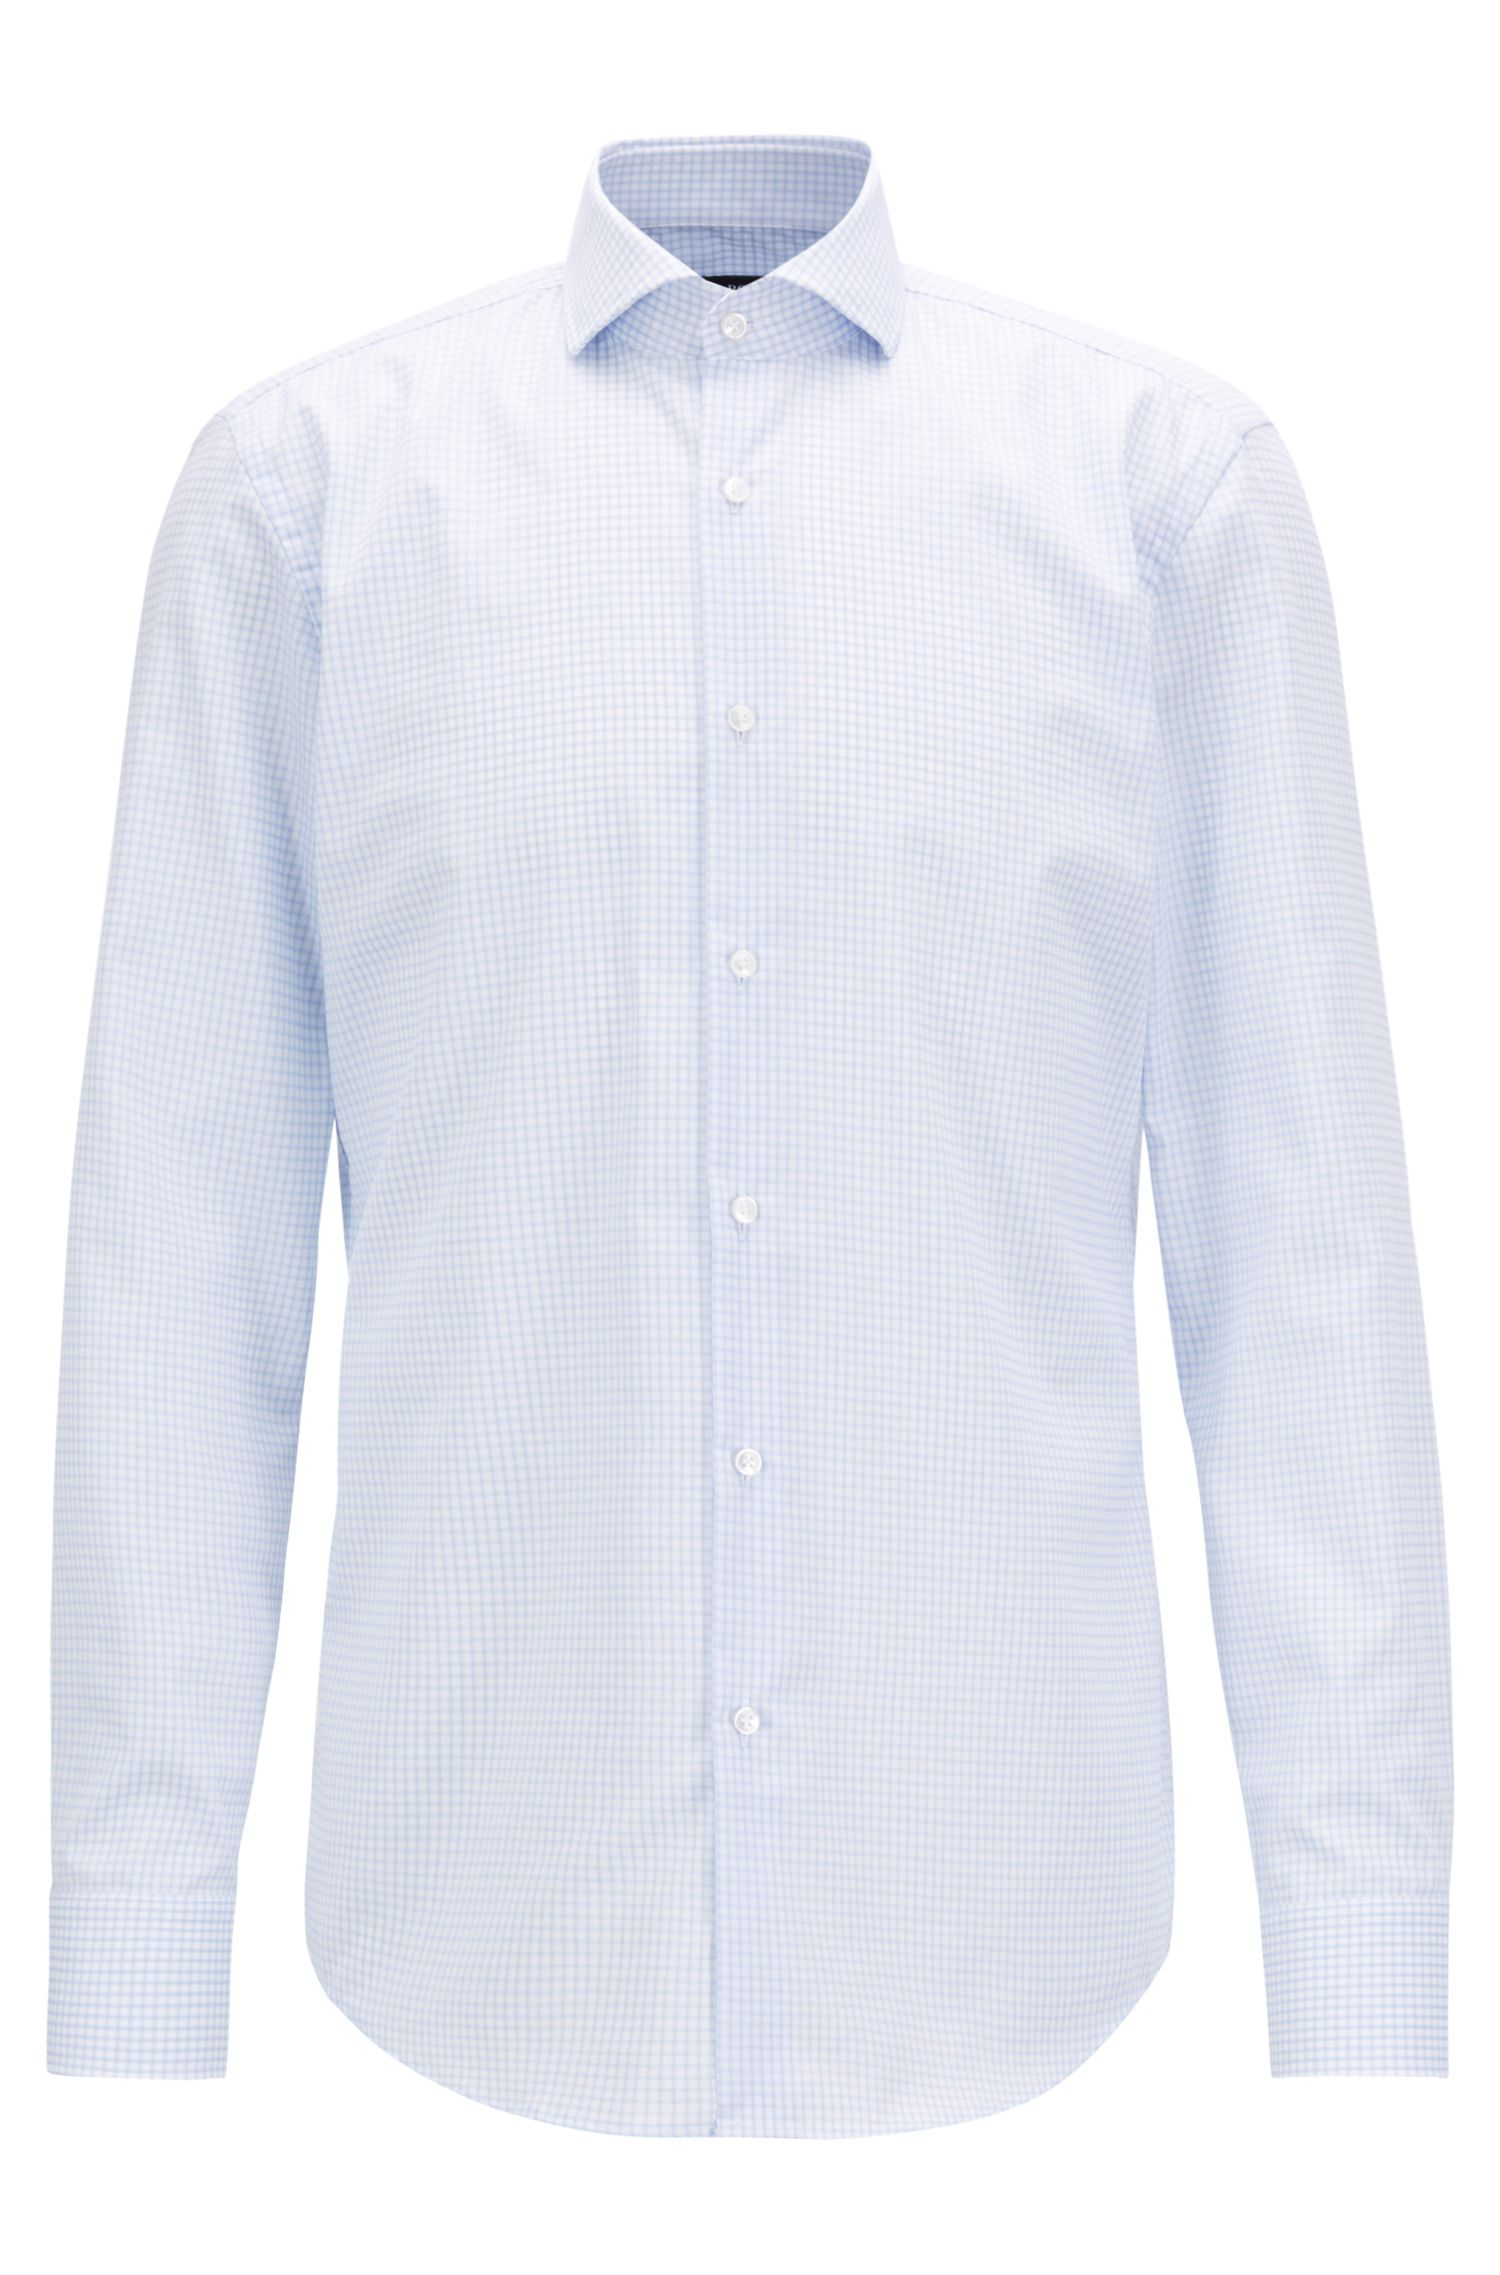 Swiss-made shirt in cotton with non-iron finishing